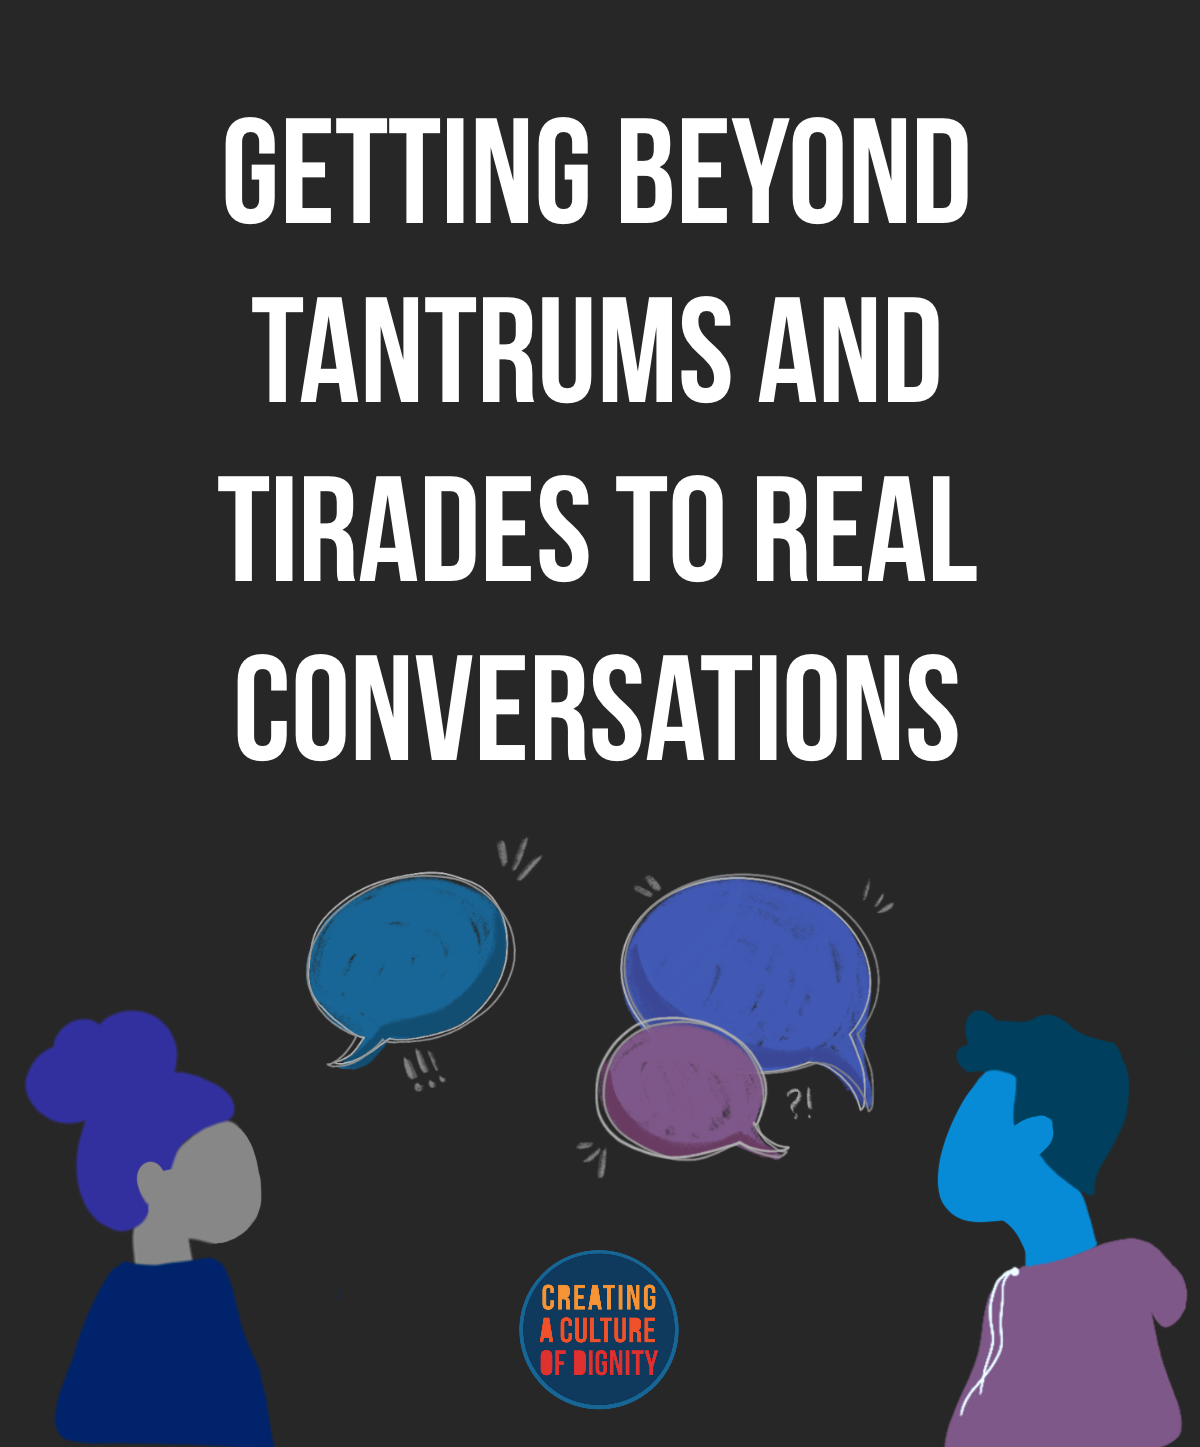 Getting Beyond Tantrums and Tirades to Real Conversations